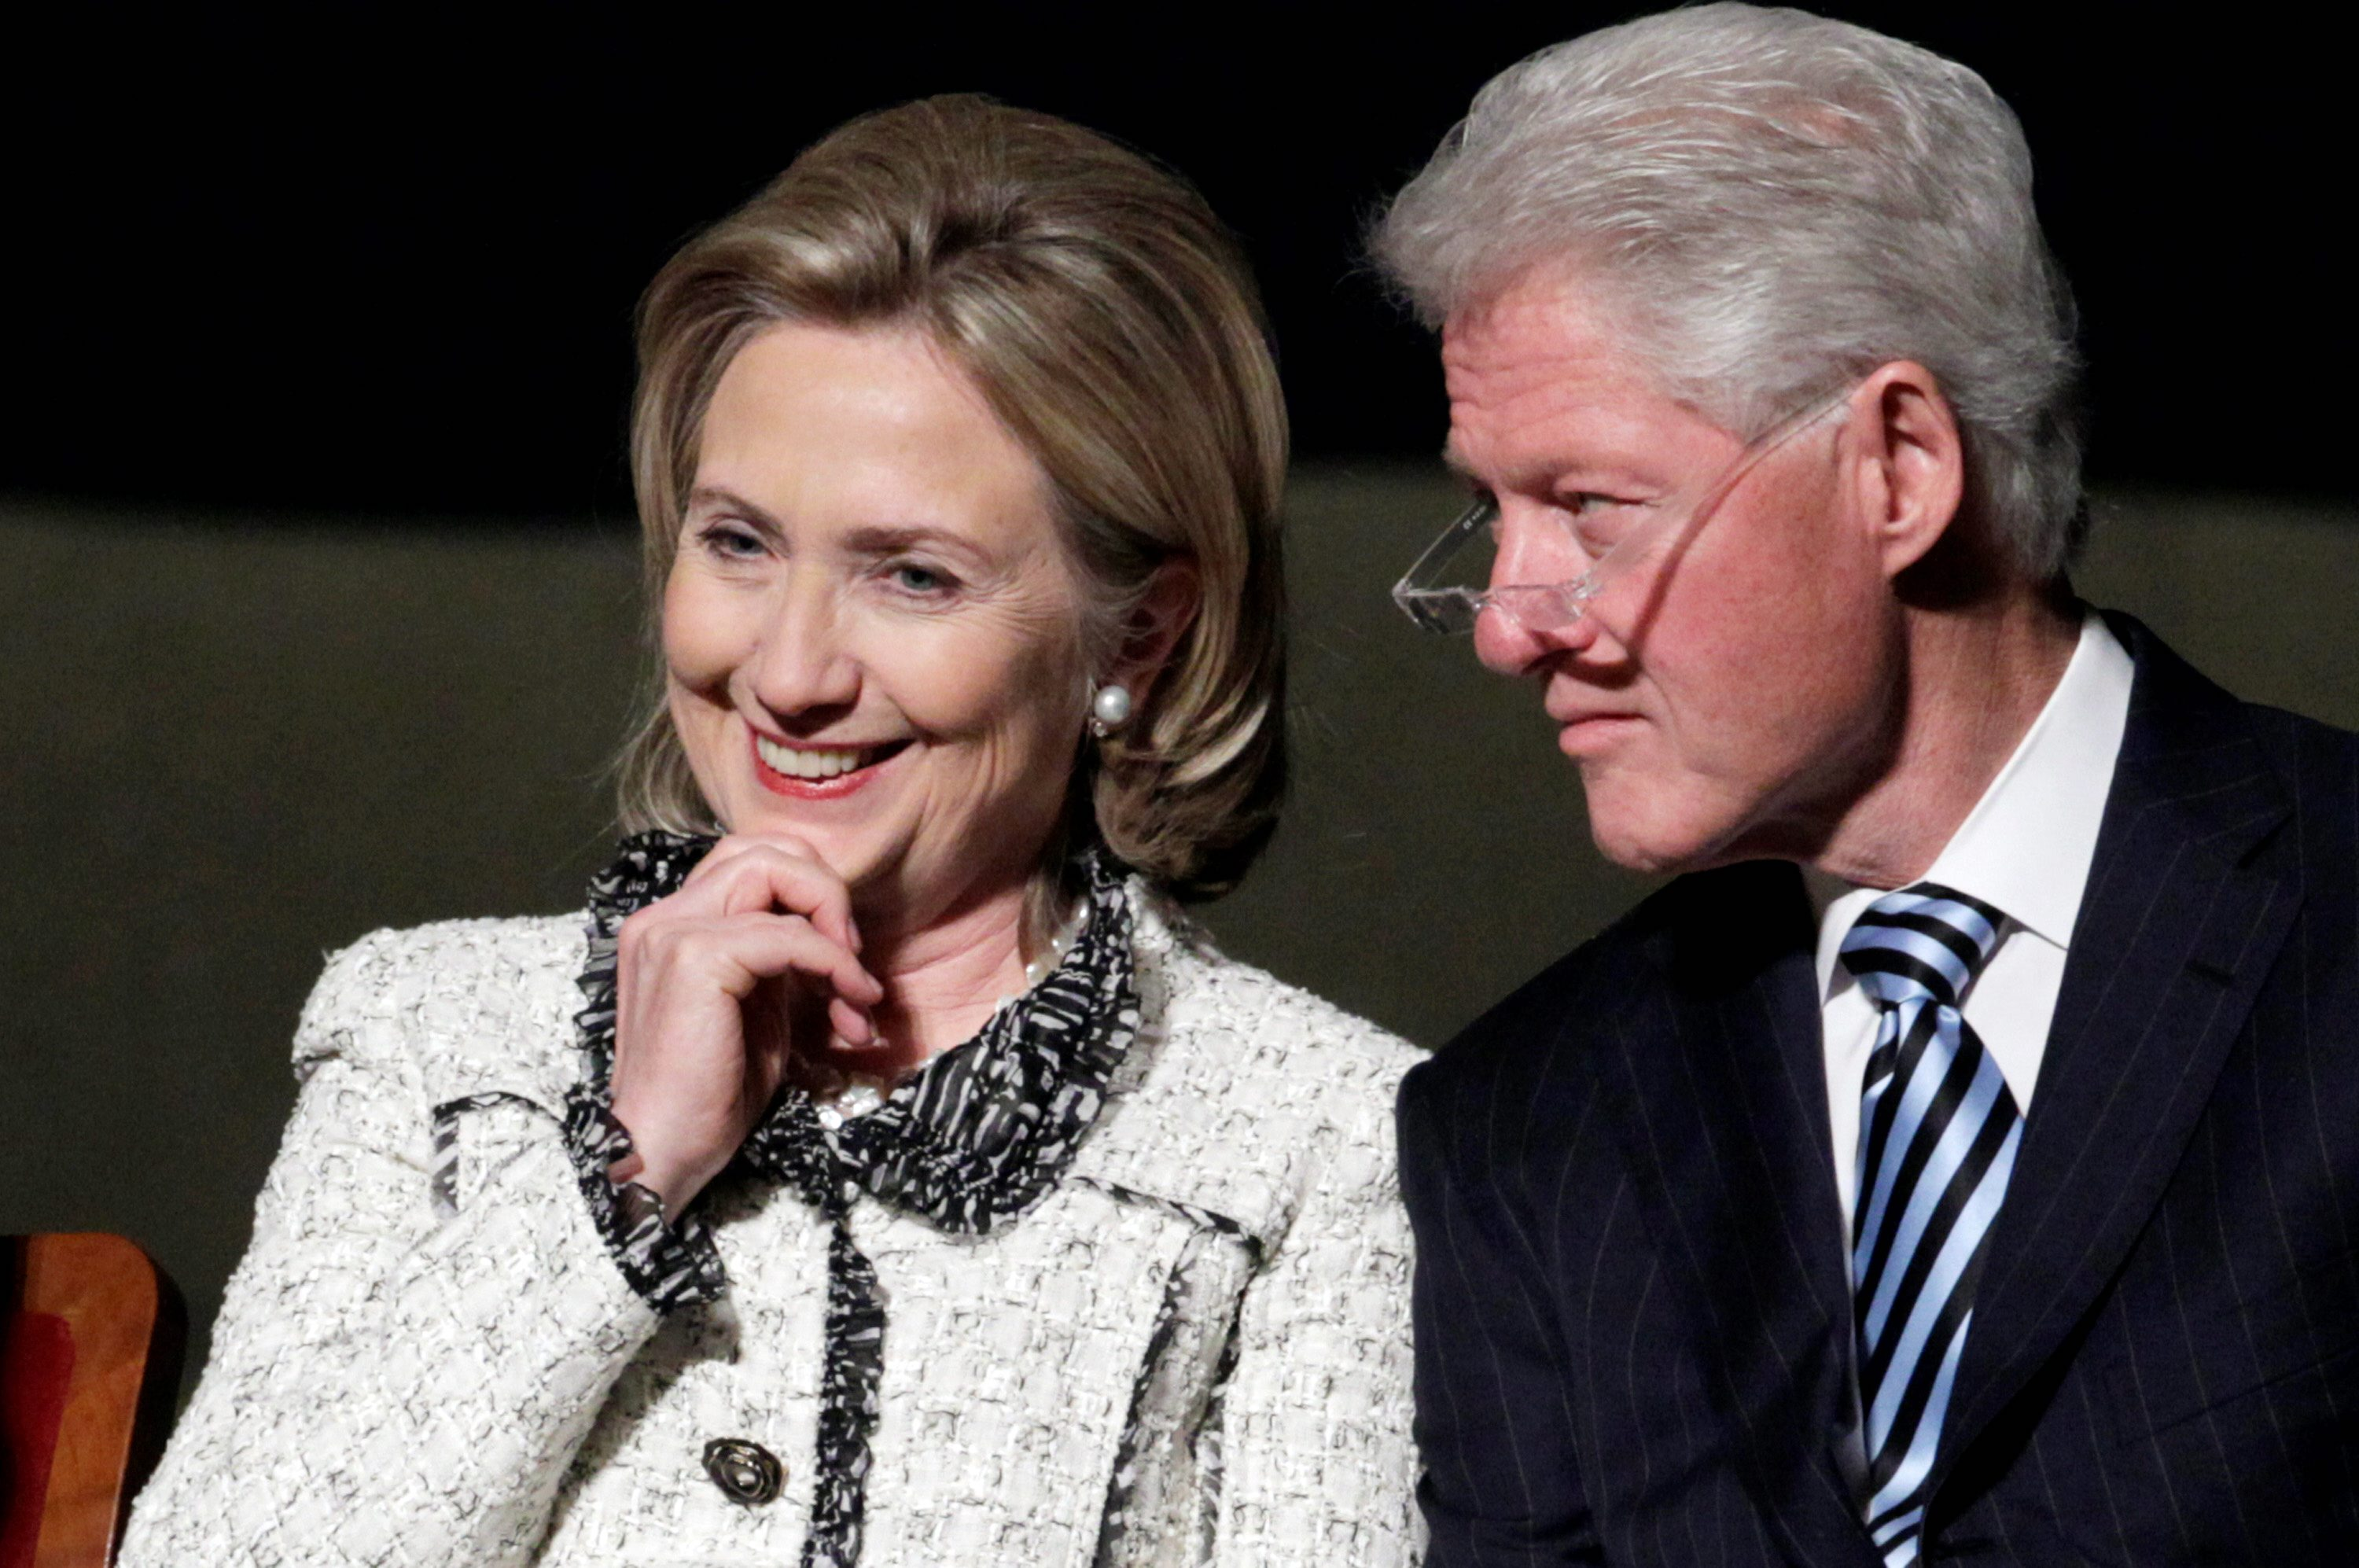 Clinton Donors Demand an Investigation - How Did She Blow $1.5 Billion in Donations?